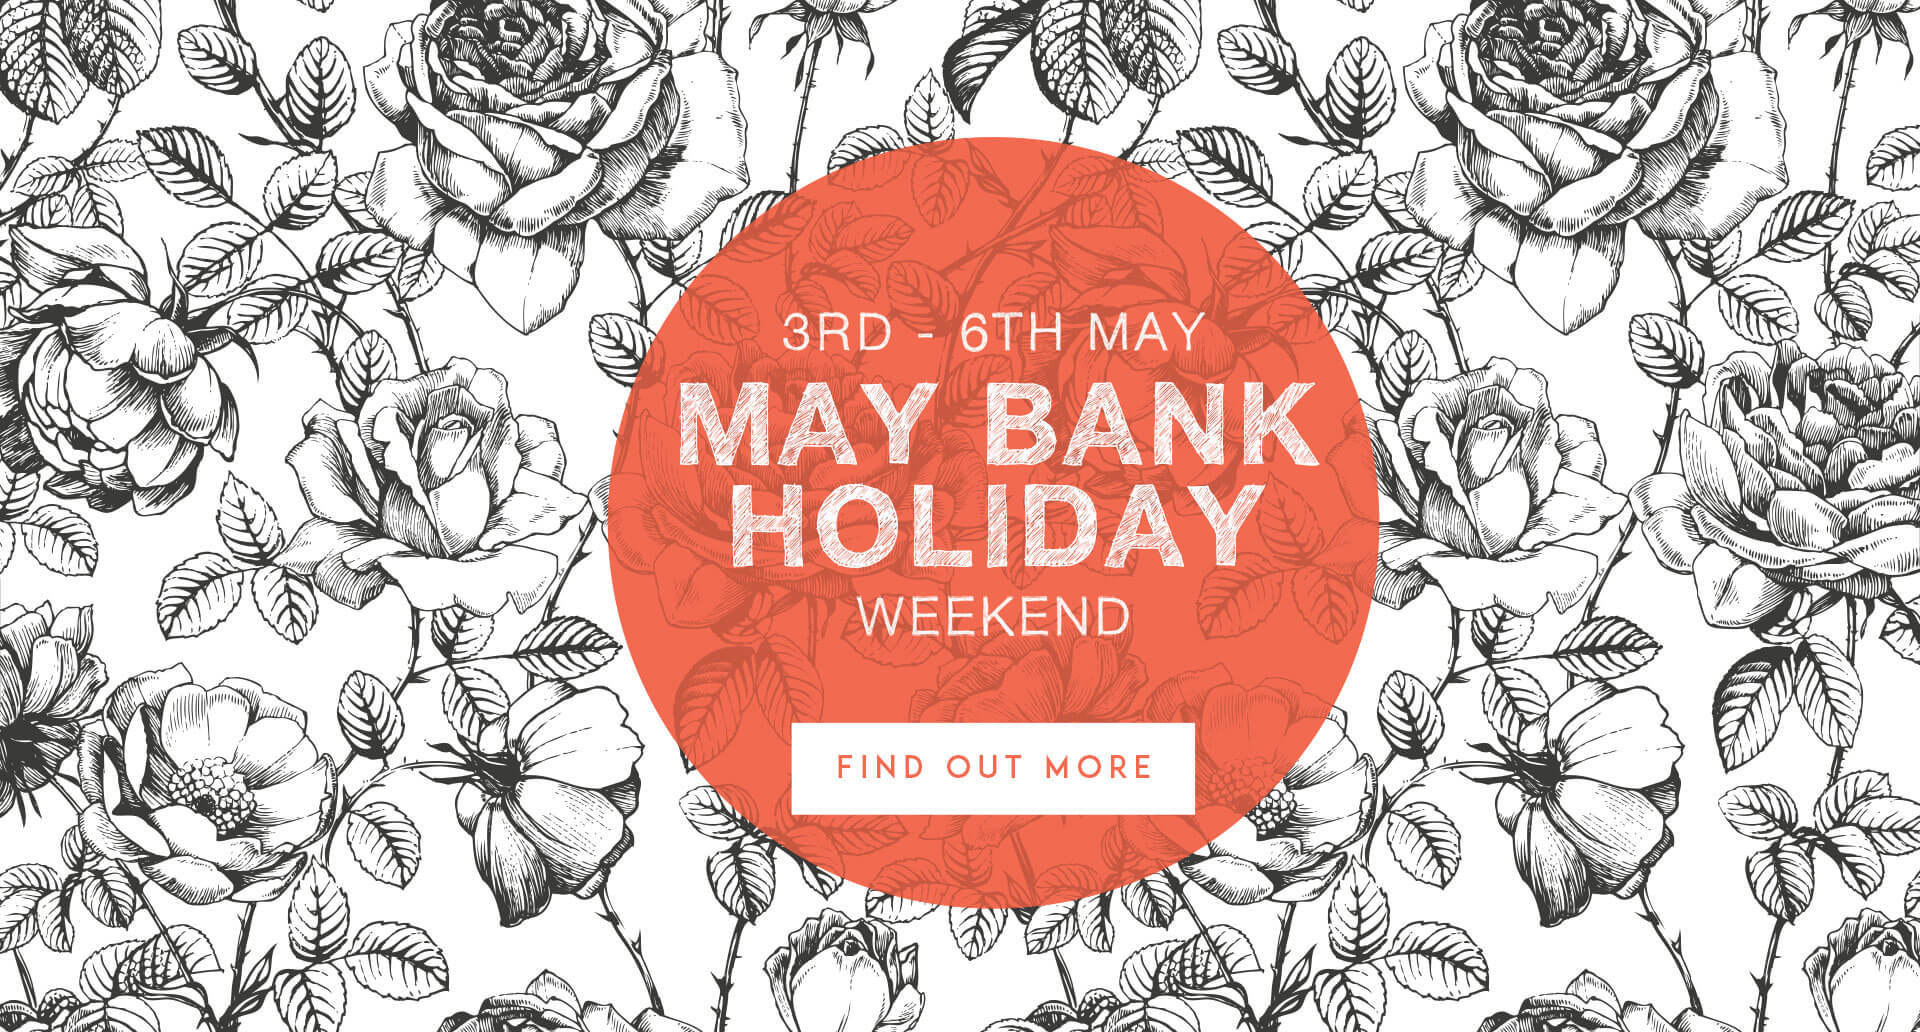 May Bank Holiday at The Commercial